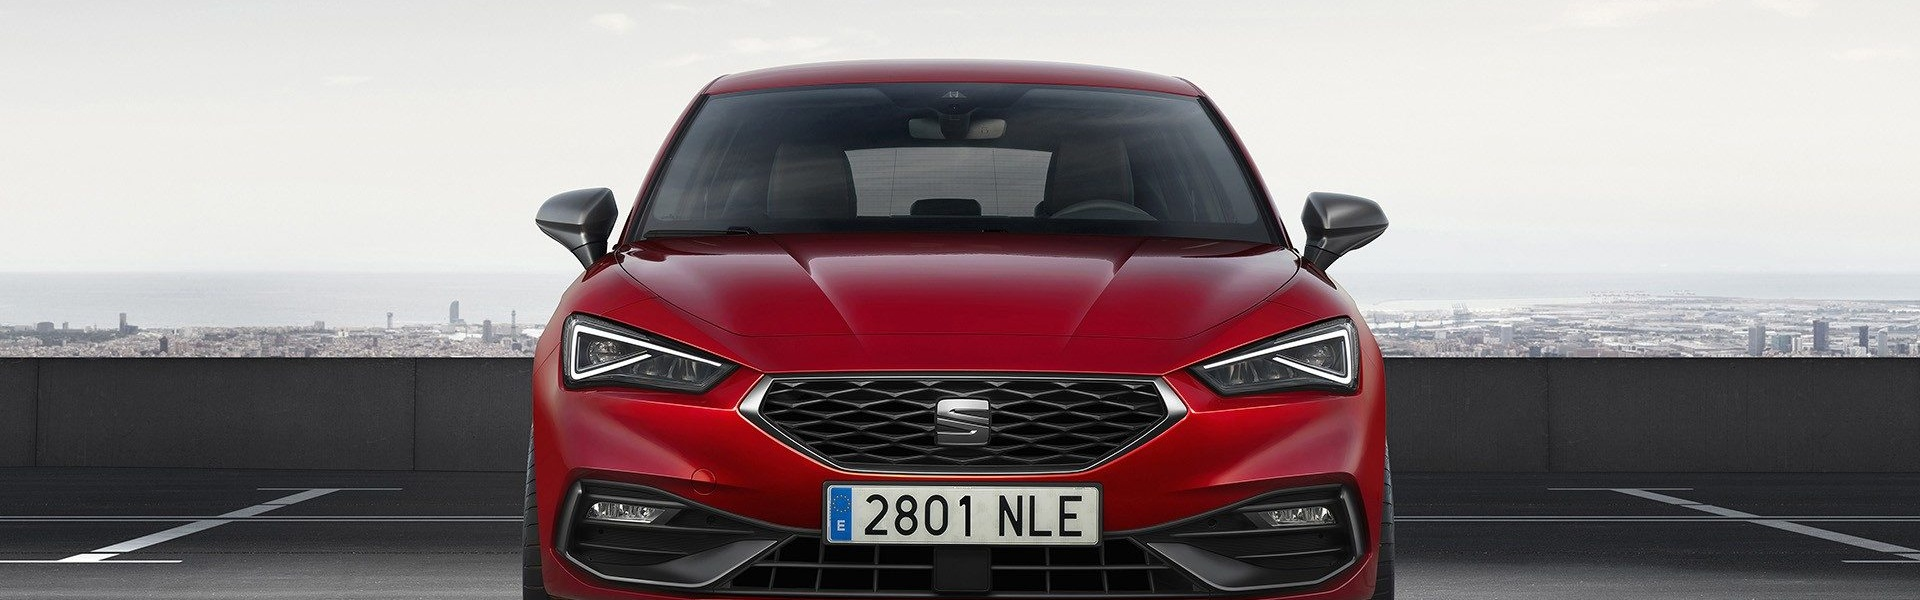 2020-Seat-Leon-Hatch-Estate-10.jpg